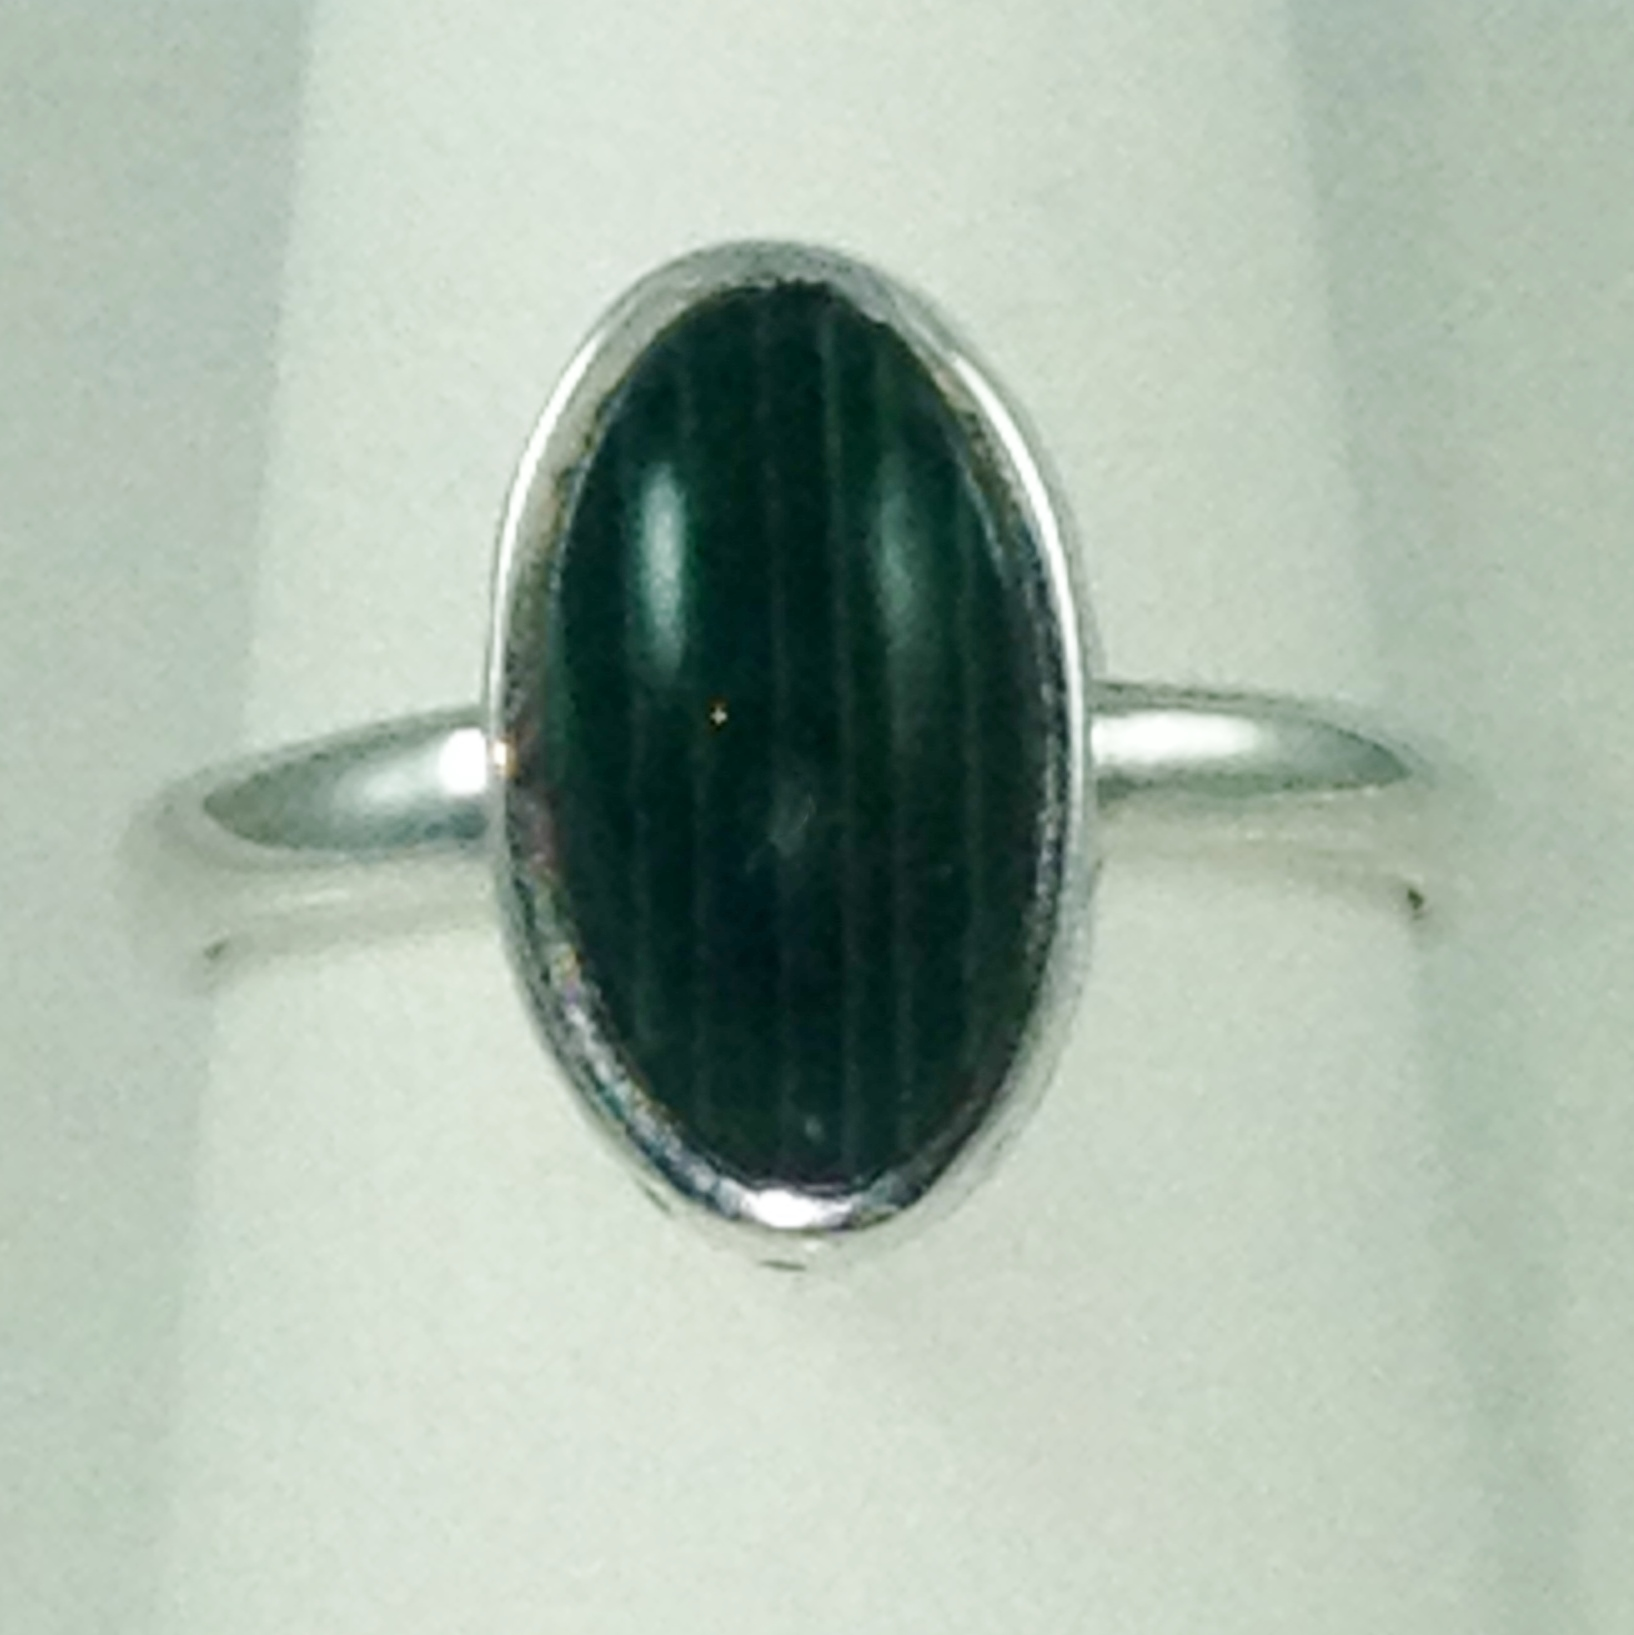 DR133 - STERLING SILVER WITH GREEN MALACHITE STONE